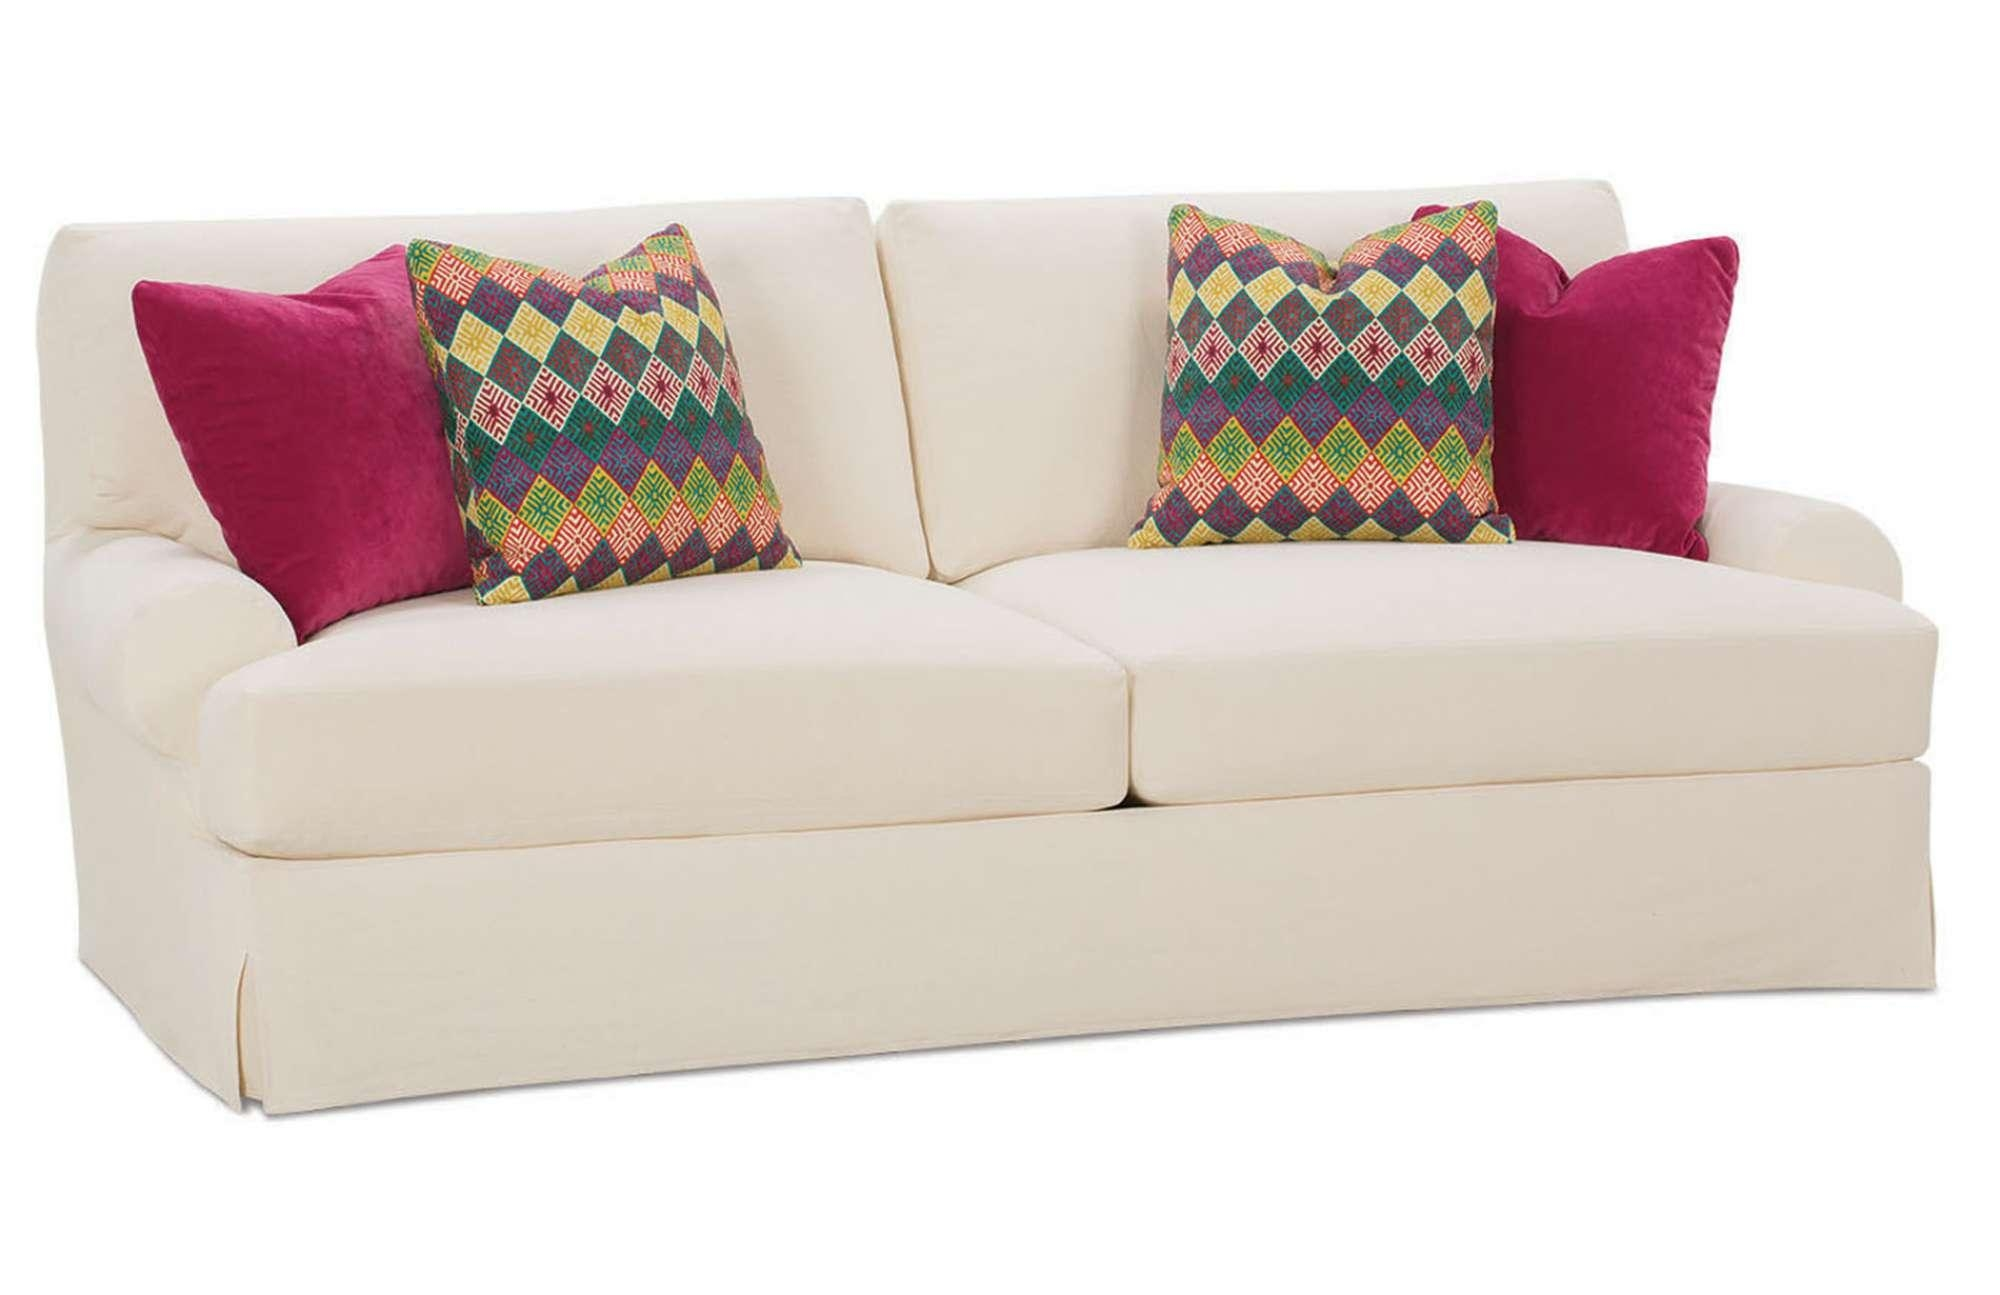 Inspirations: Interesting Furniture Sectional Sofa Slipcovers For In 3 Piece Sofa Slipcovers (Image 12 of 20)